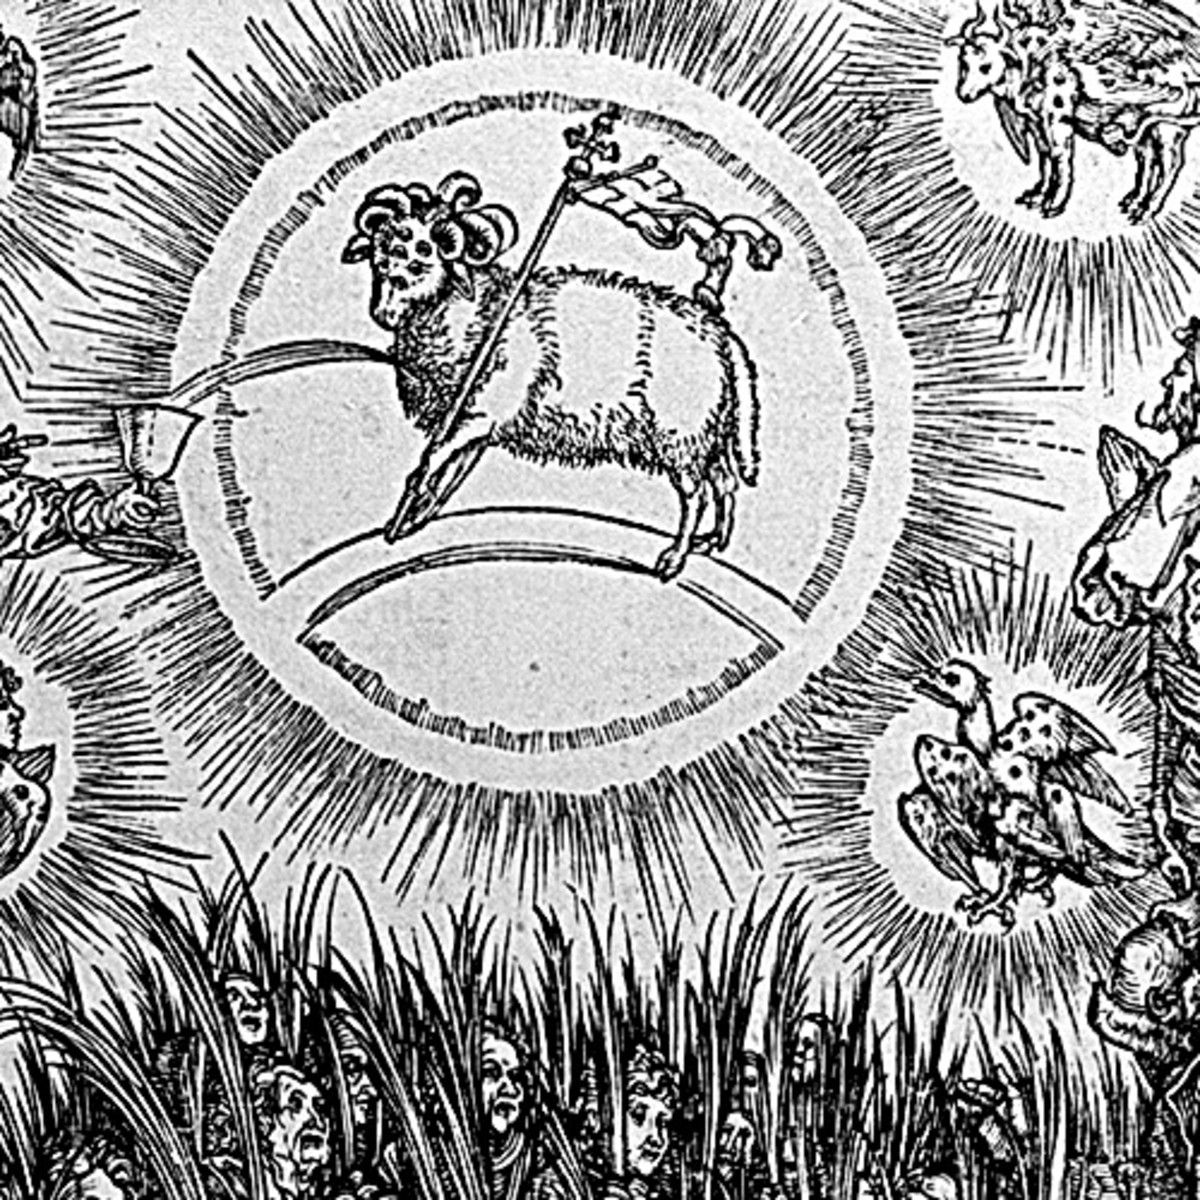 """Here we show a portion of 'The Adoration of the Lamb and the Hymn of the Chosen' - the seventh Woodcut from the suite by Albrecht Durer known as """"The Apocalypse""""."""